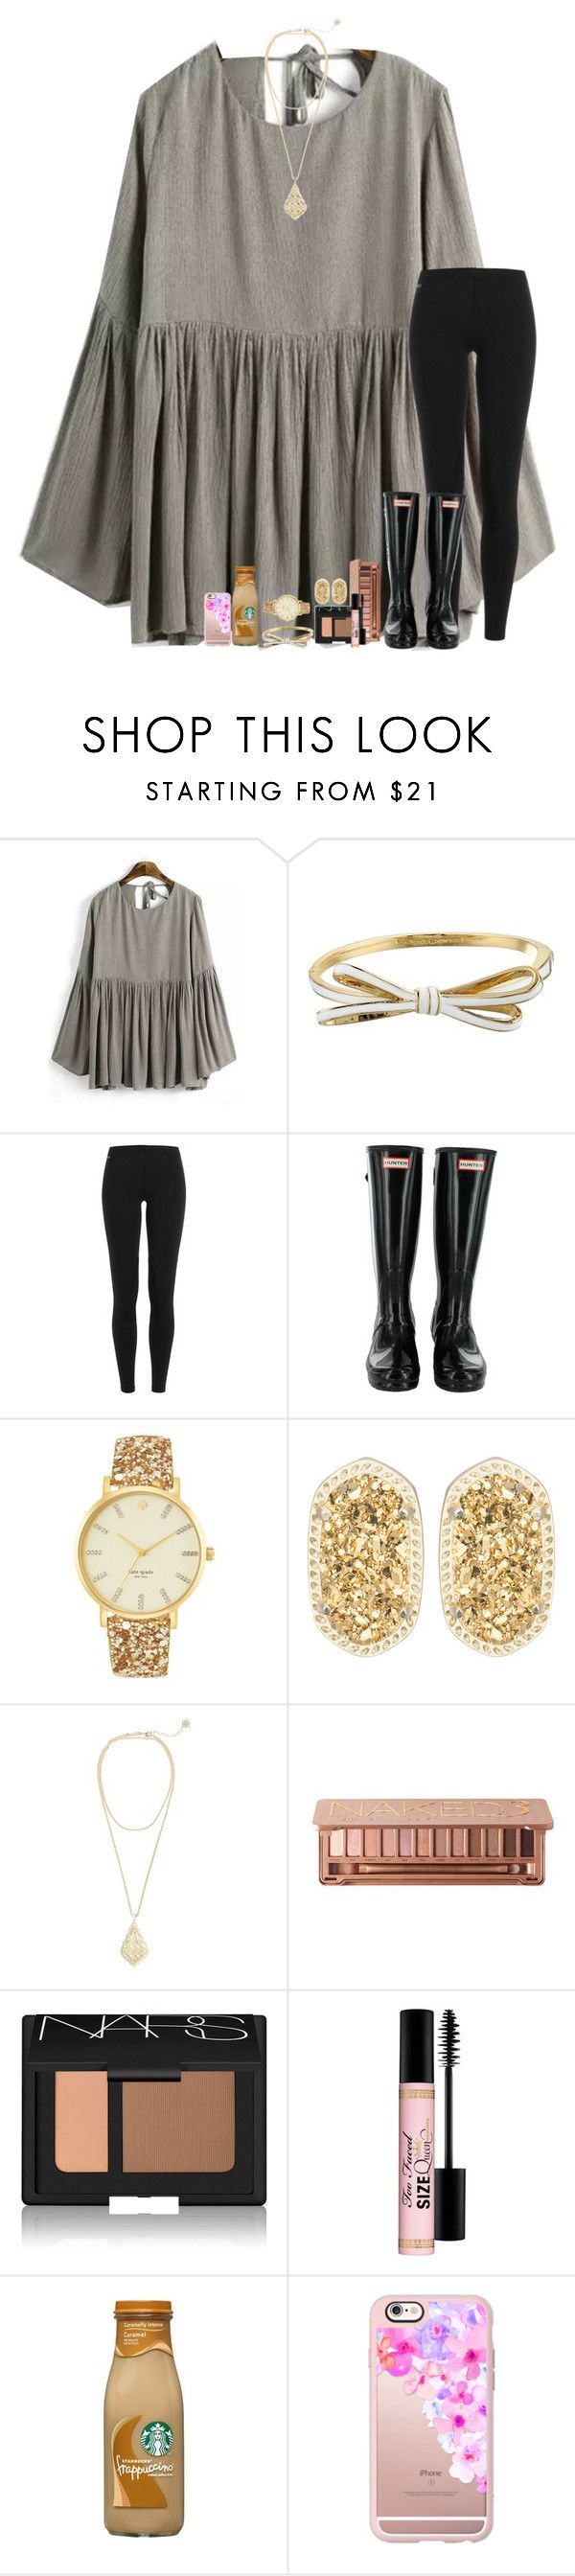 """Took my love to wreck it all"" by stripedprep ❤ liked on Polyvore featuring Kate Spade, Polo Ralph Lauren, Kendra Scott, Urban Decay, NARS Cosmetics, Too Faced Cosmetics and Casetify"